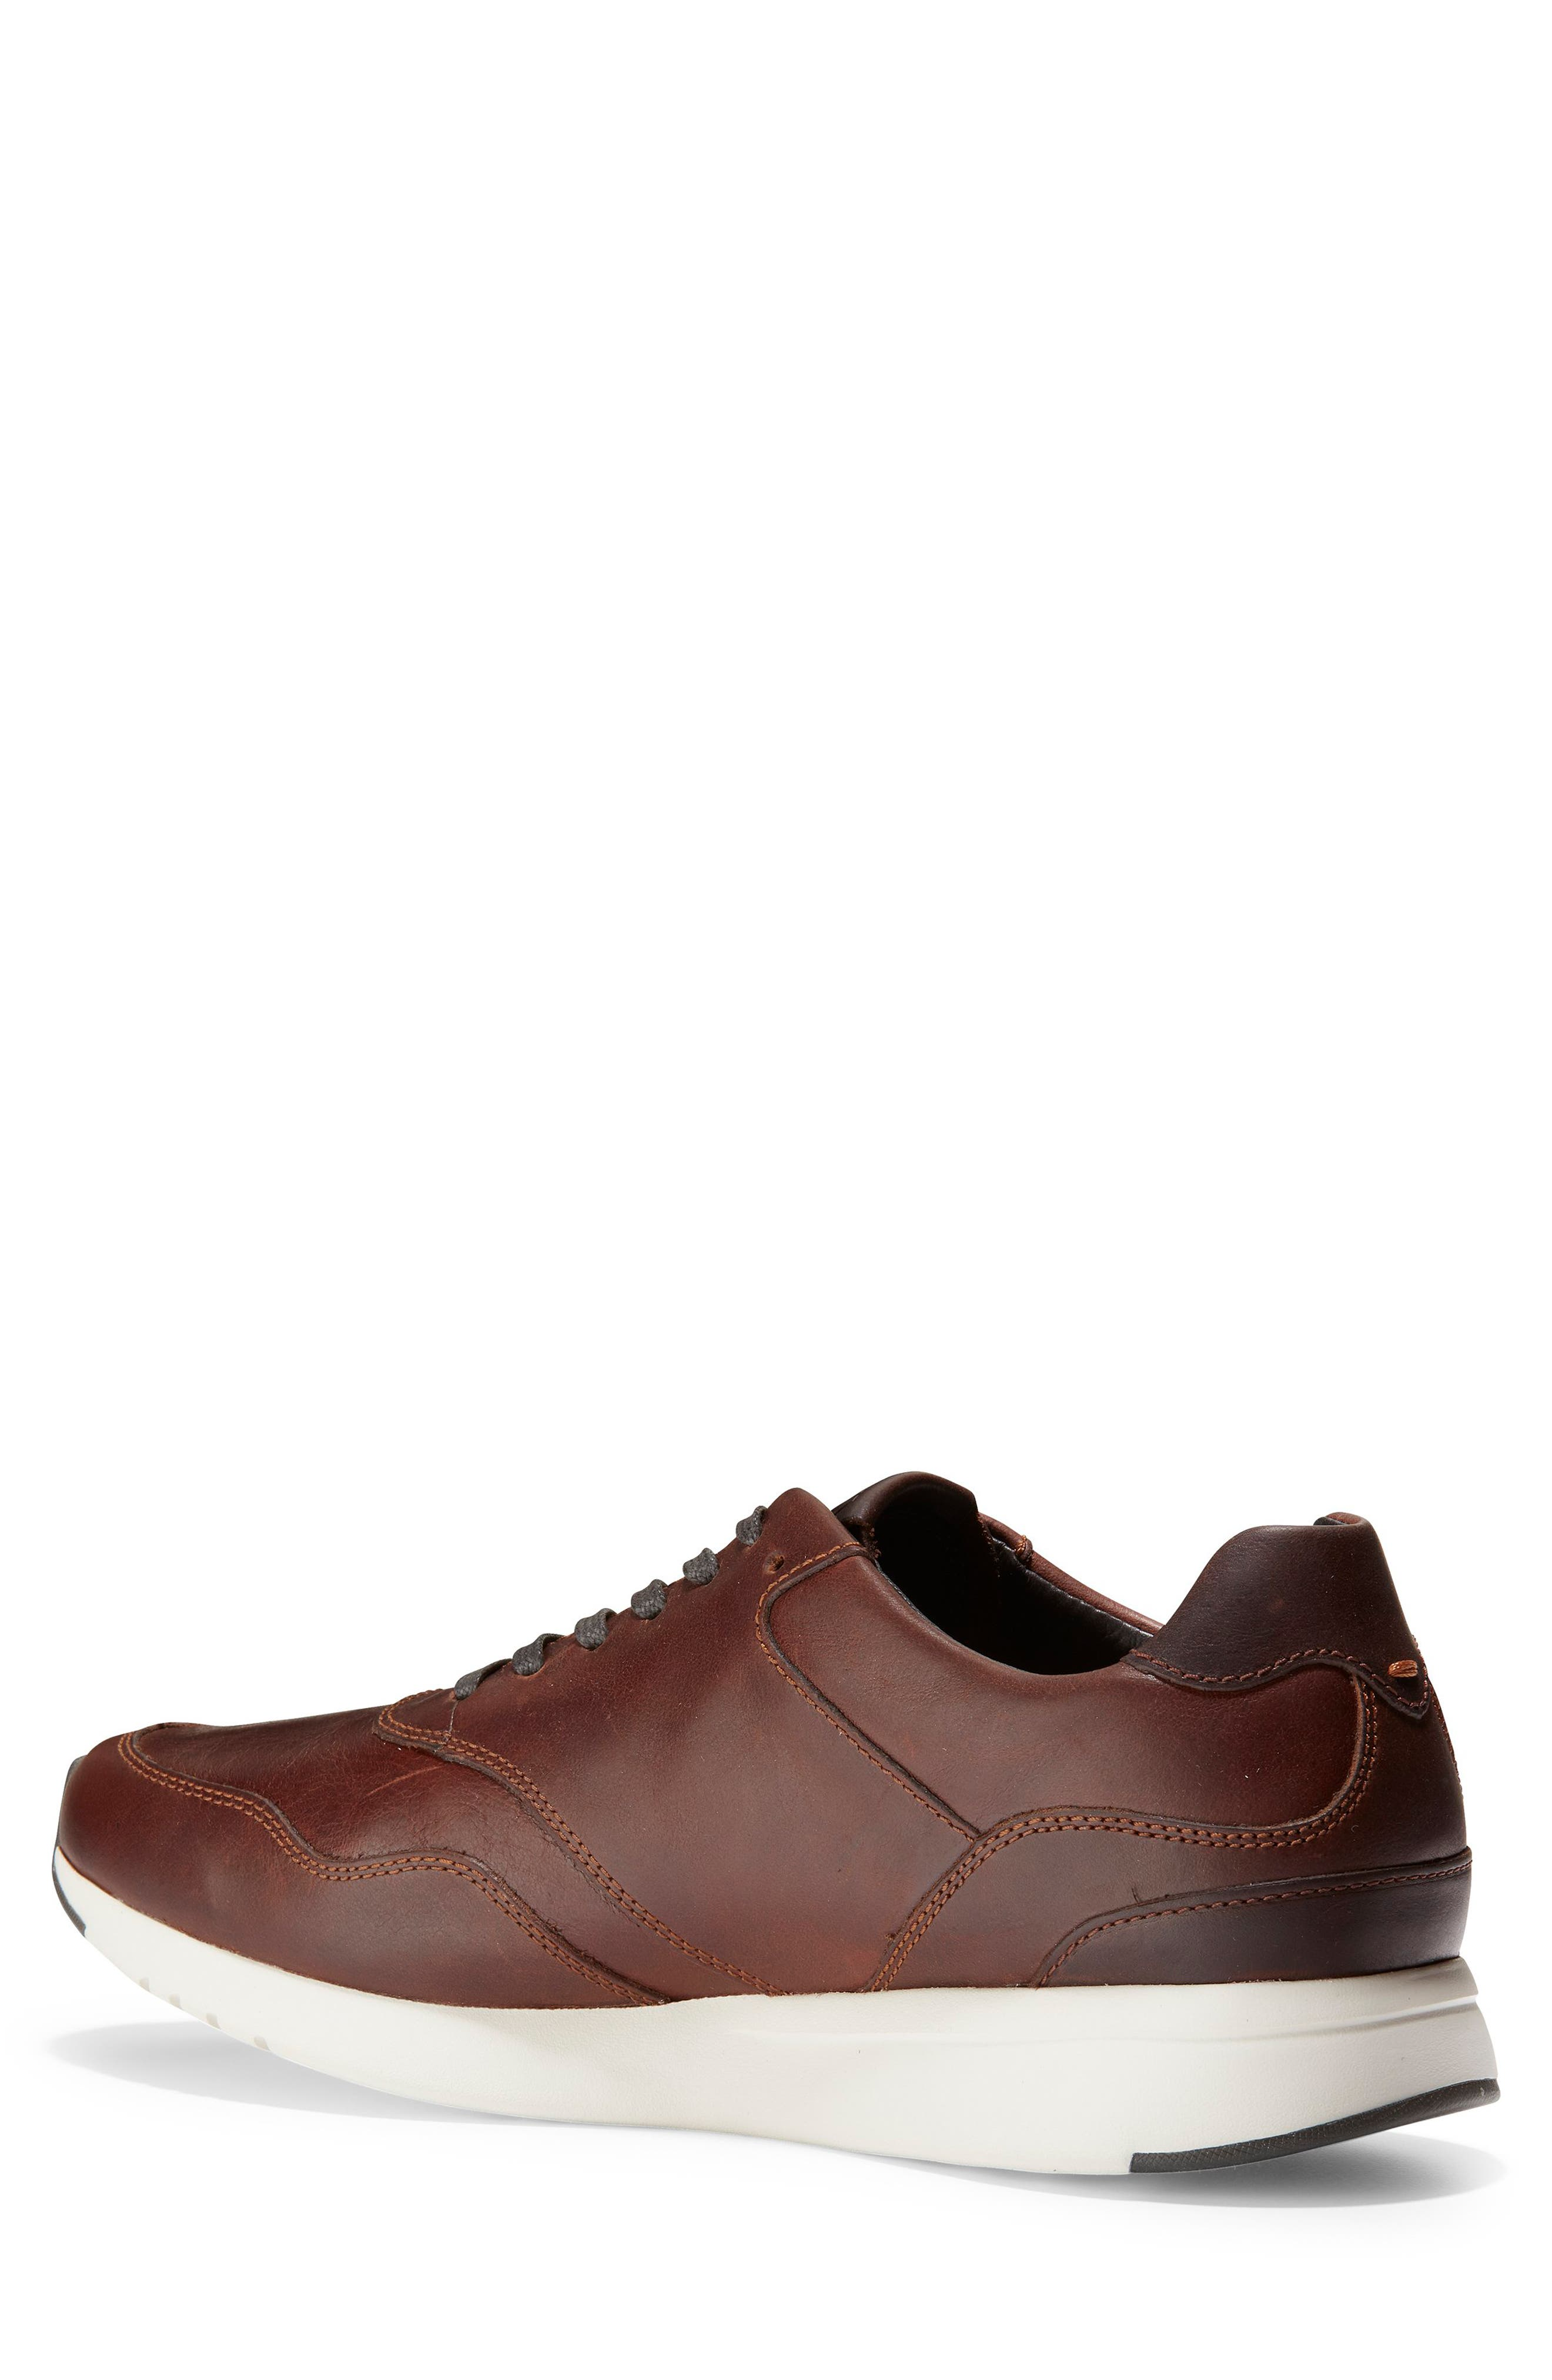 GrandPro Sneaker,                             Alternate thumbnail 2, color,                             MESQUITE/ COFFEE LEATHER